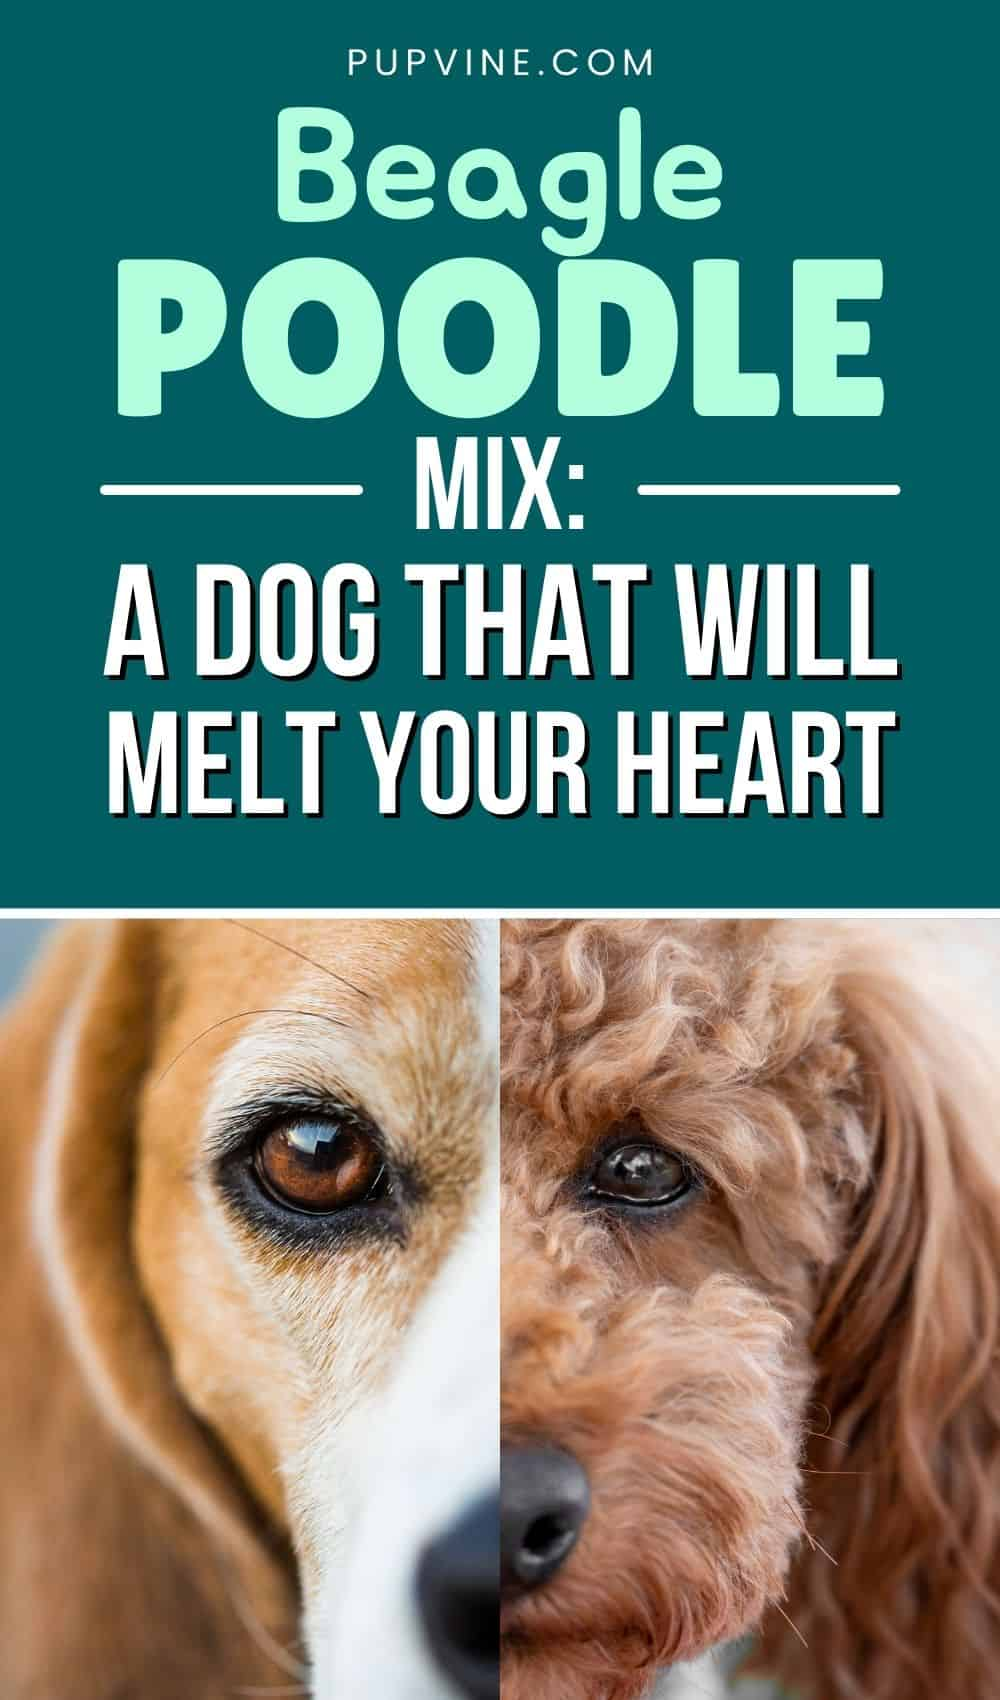 Beagle Poodle Mix A Dog That Will Melt Your Heart